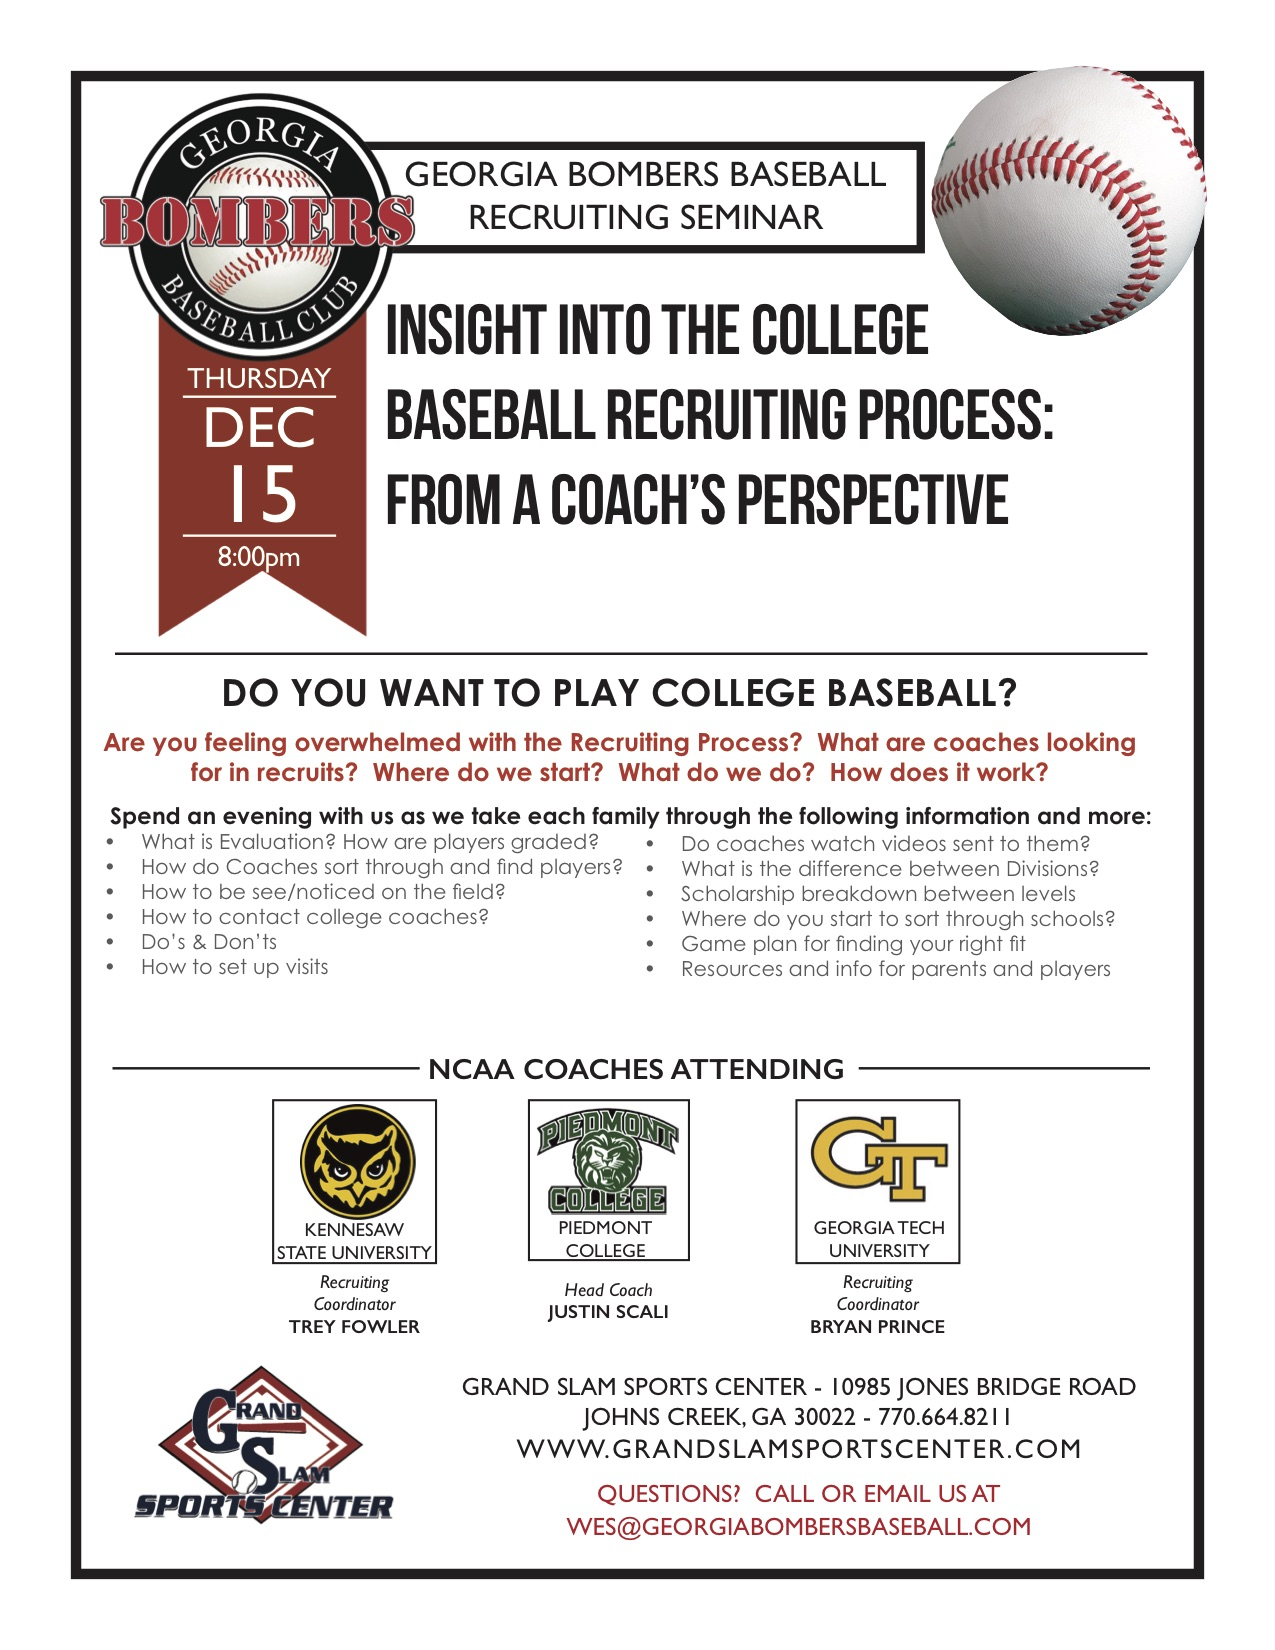 Bombers 2017 Recruiting Seminar Flyer